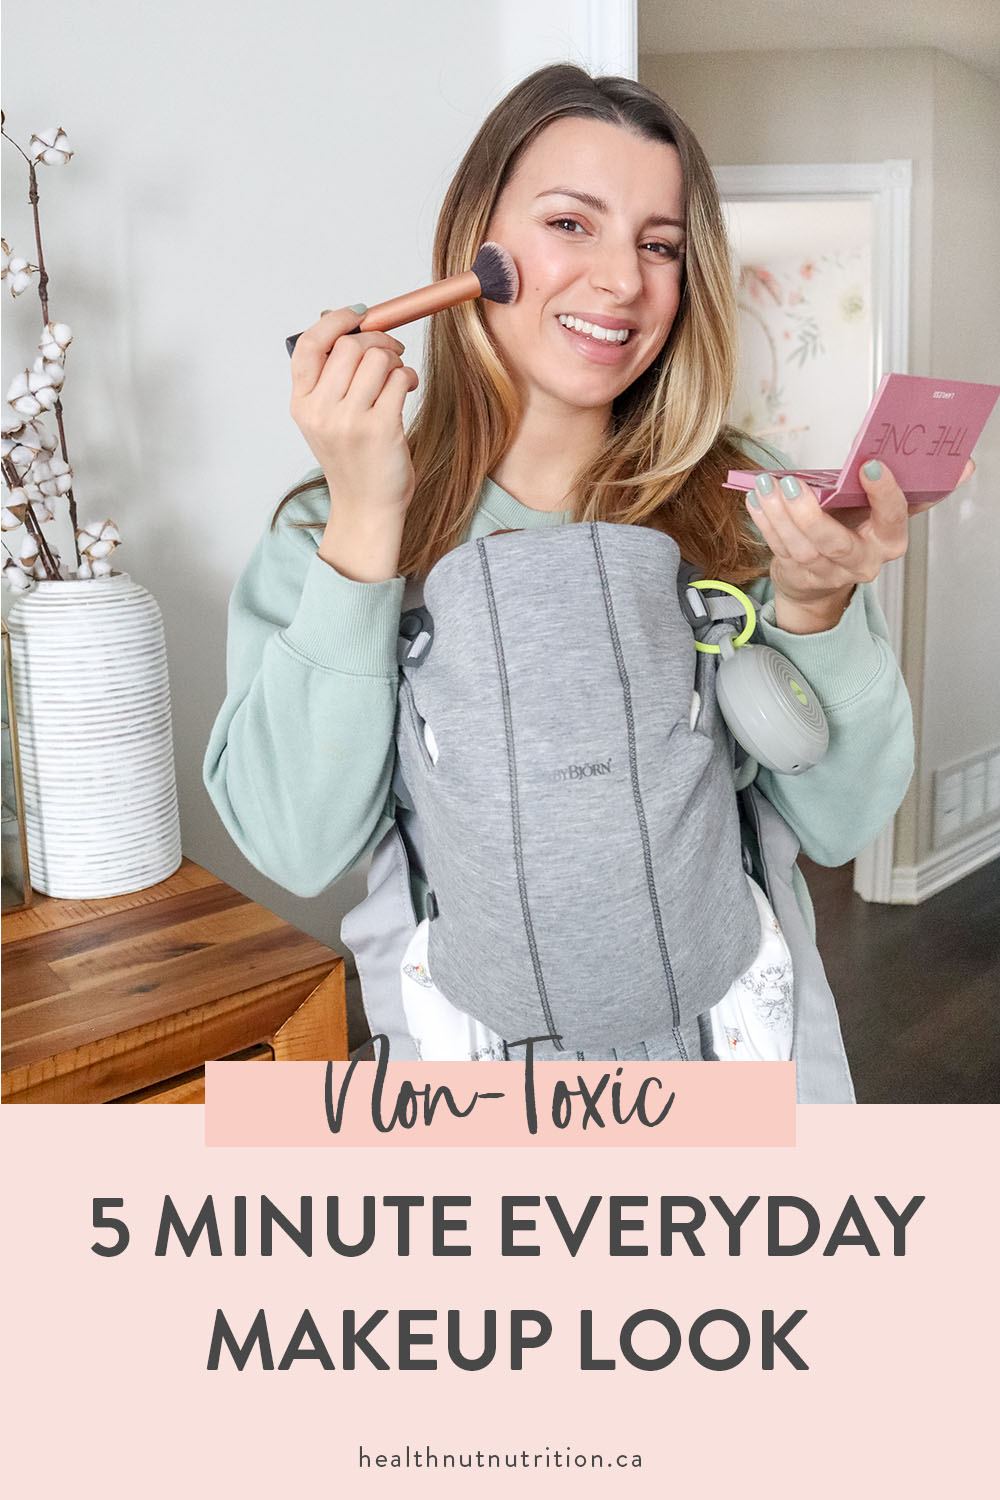 Quick & easy 5 minute everyday makeup look with all natural products! This is my go-to makeup look to help me feel a little more put together and ready to take on the day!